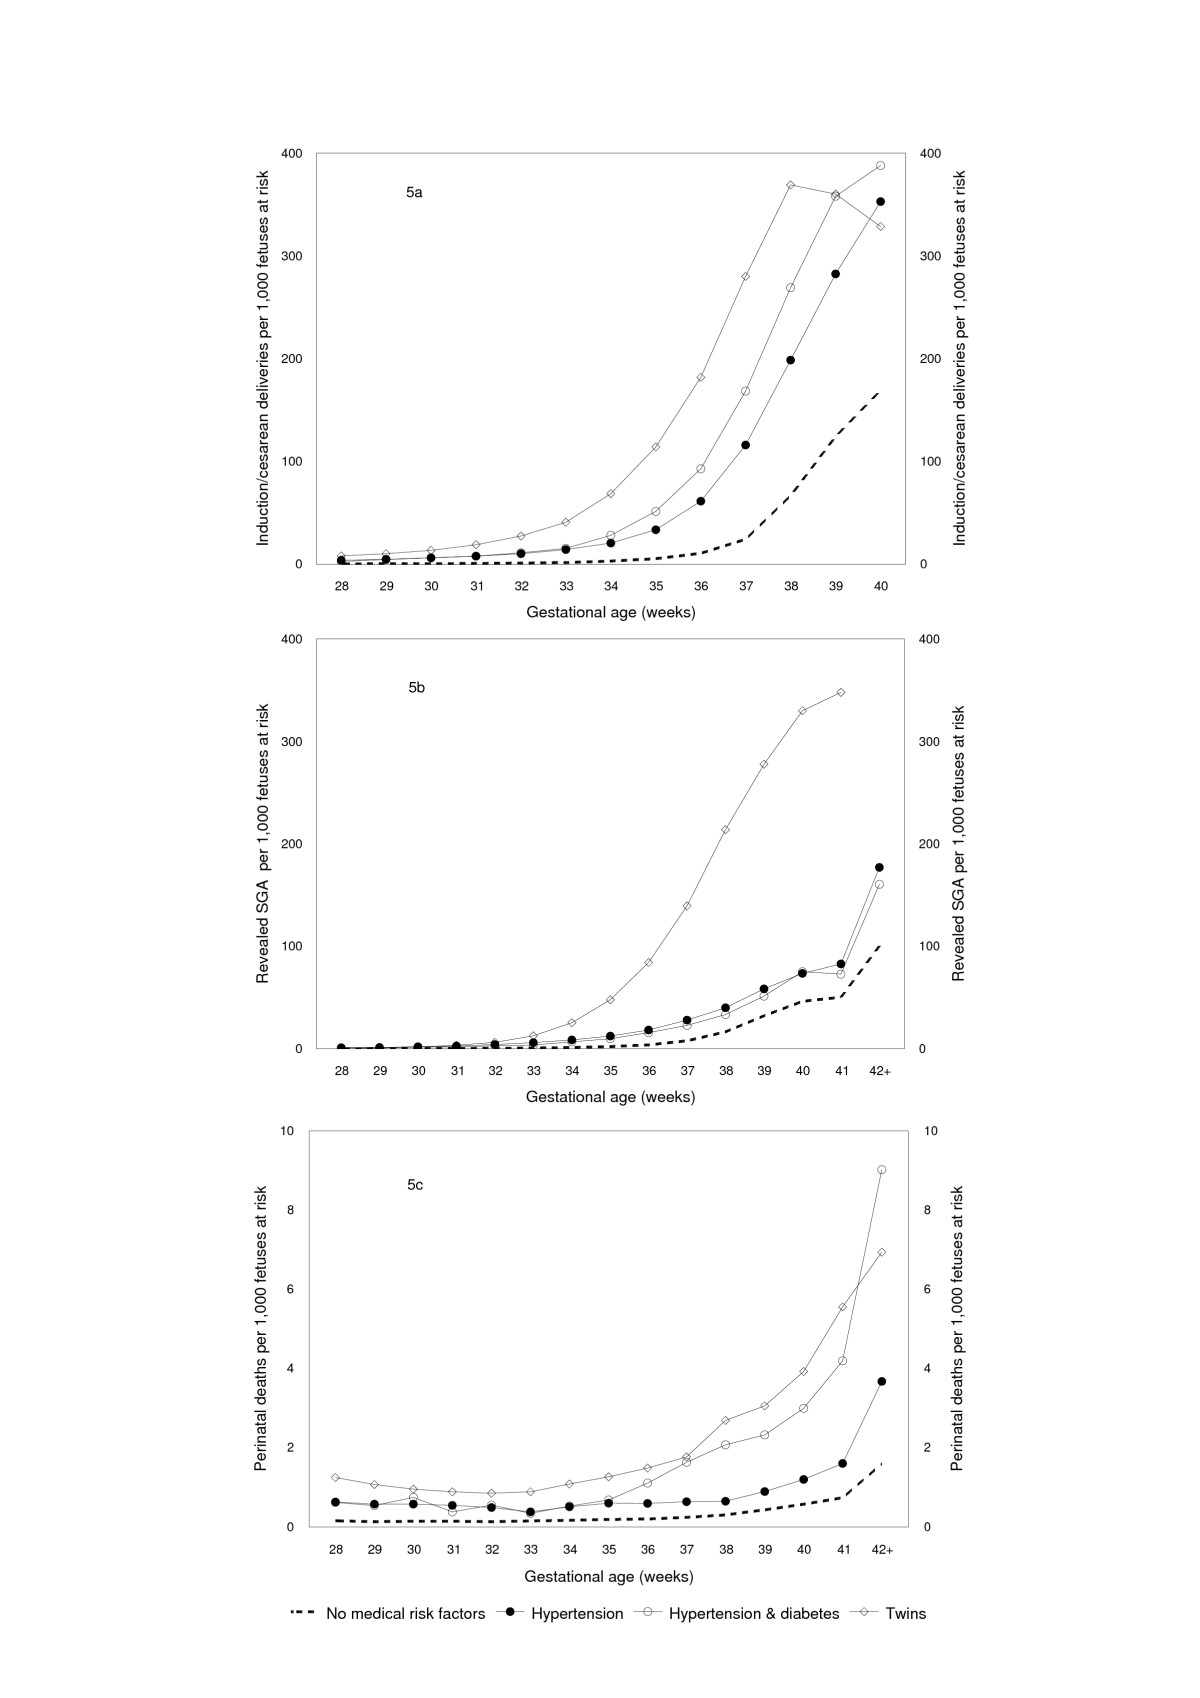 http://static-content.springer.com/image/art%3A10.1186%2F1471-2393-7-4/MediaObjects/12884_2005_Article_102_Fig5_HTML.jpg